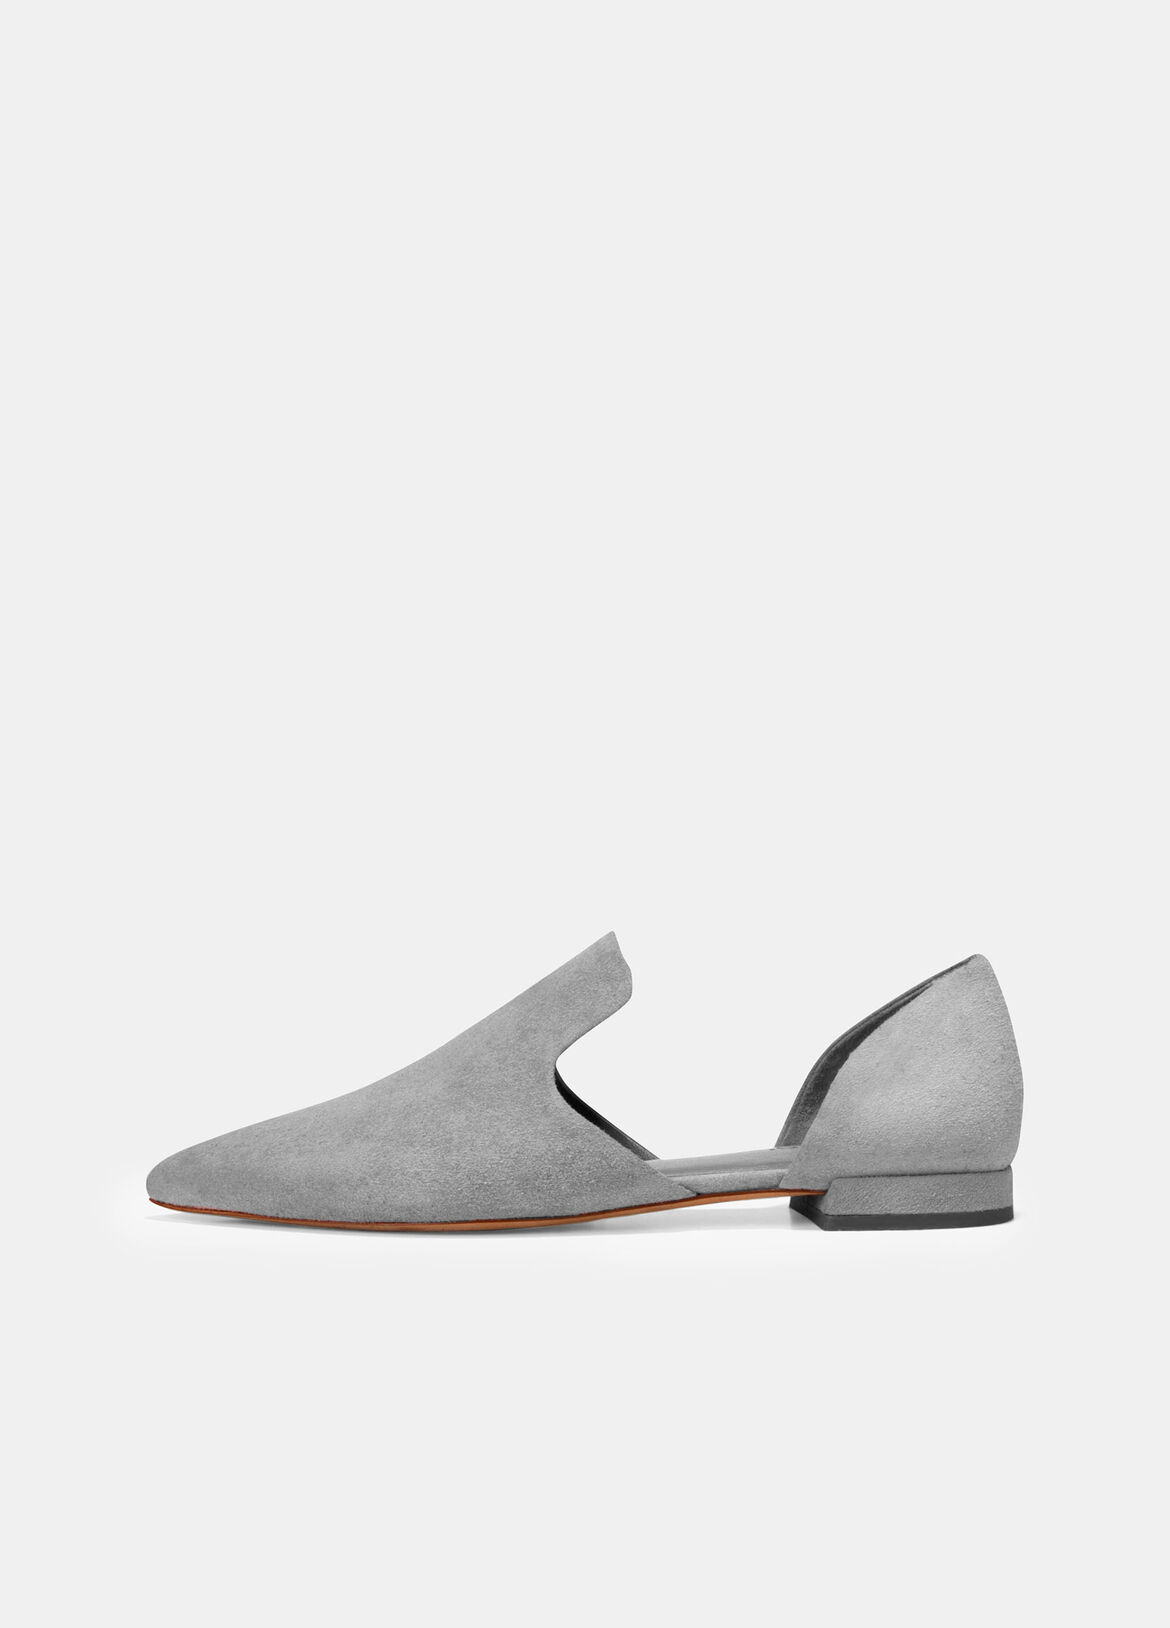 Italian-crafted in luxe suede, these flats have a modern d'Orsay silhouette. The streamlined design is accentuated by an extended vamp and the soft curvature of cut-out side panels.